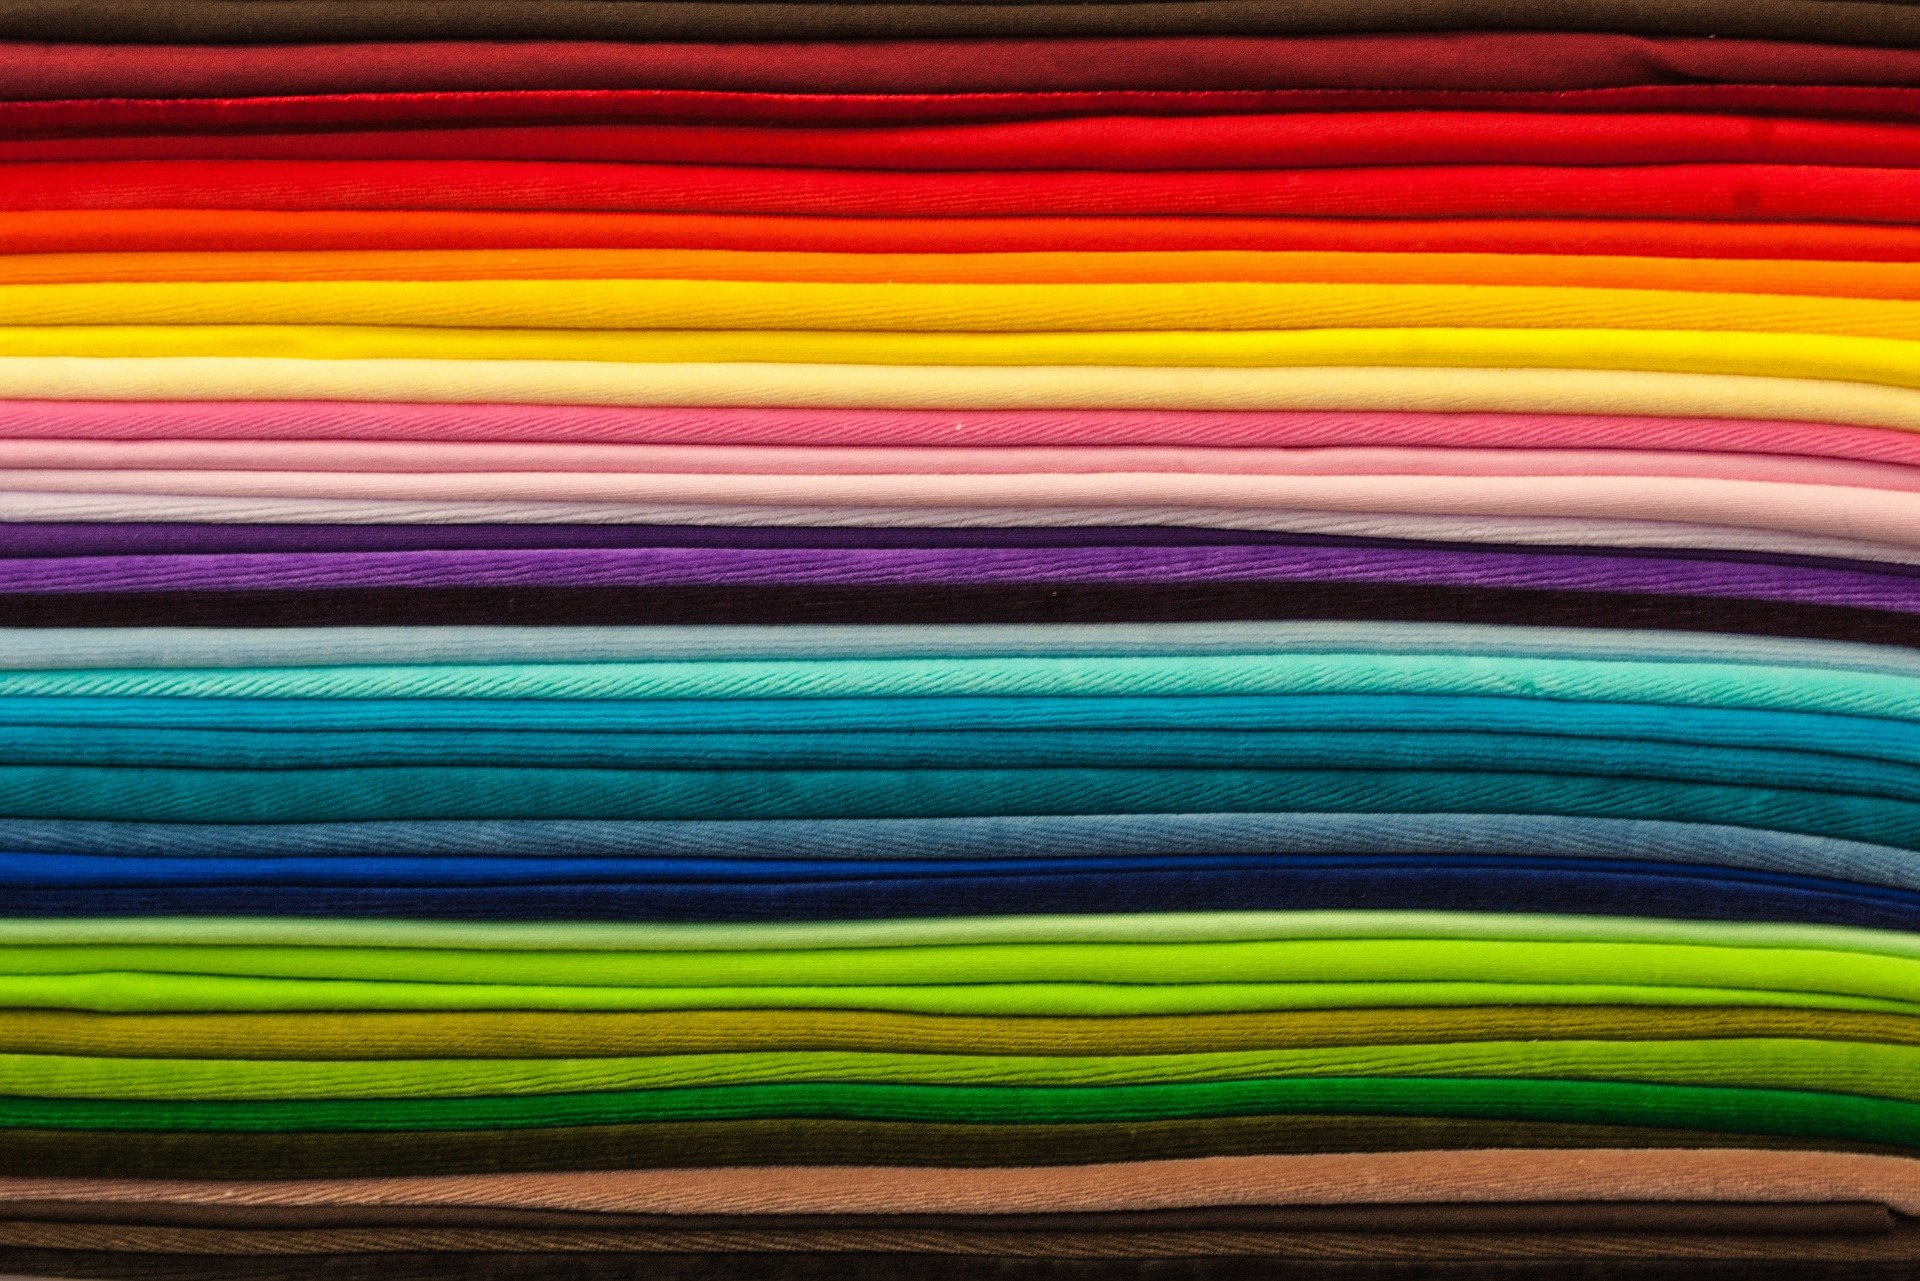 AMENDMENT AND CREATION OF REBATES ON CERTAIN TEXTILES IN SOUTH AFRICA